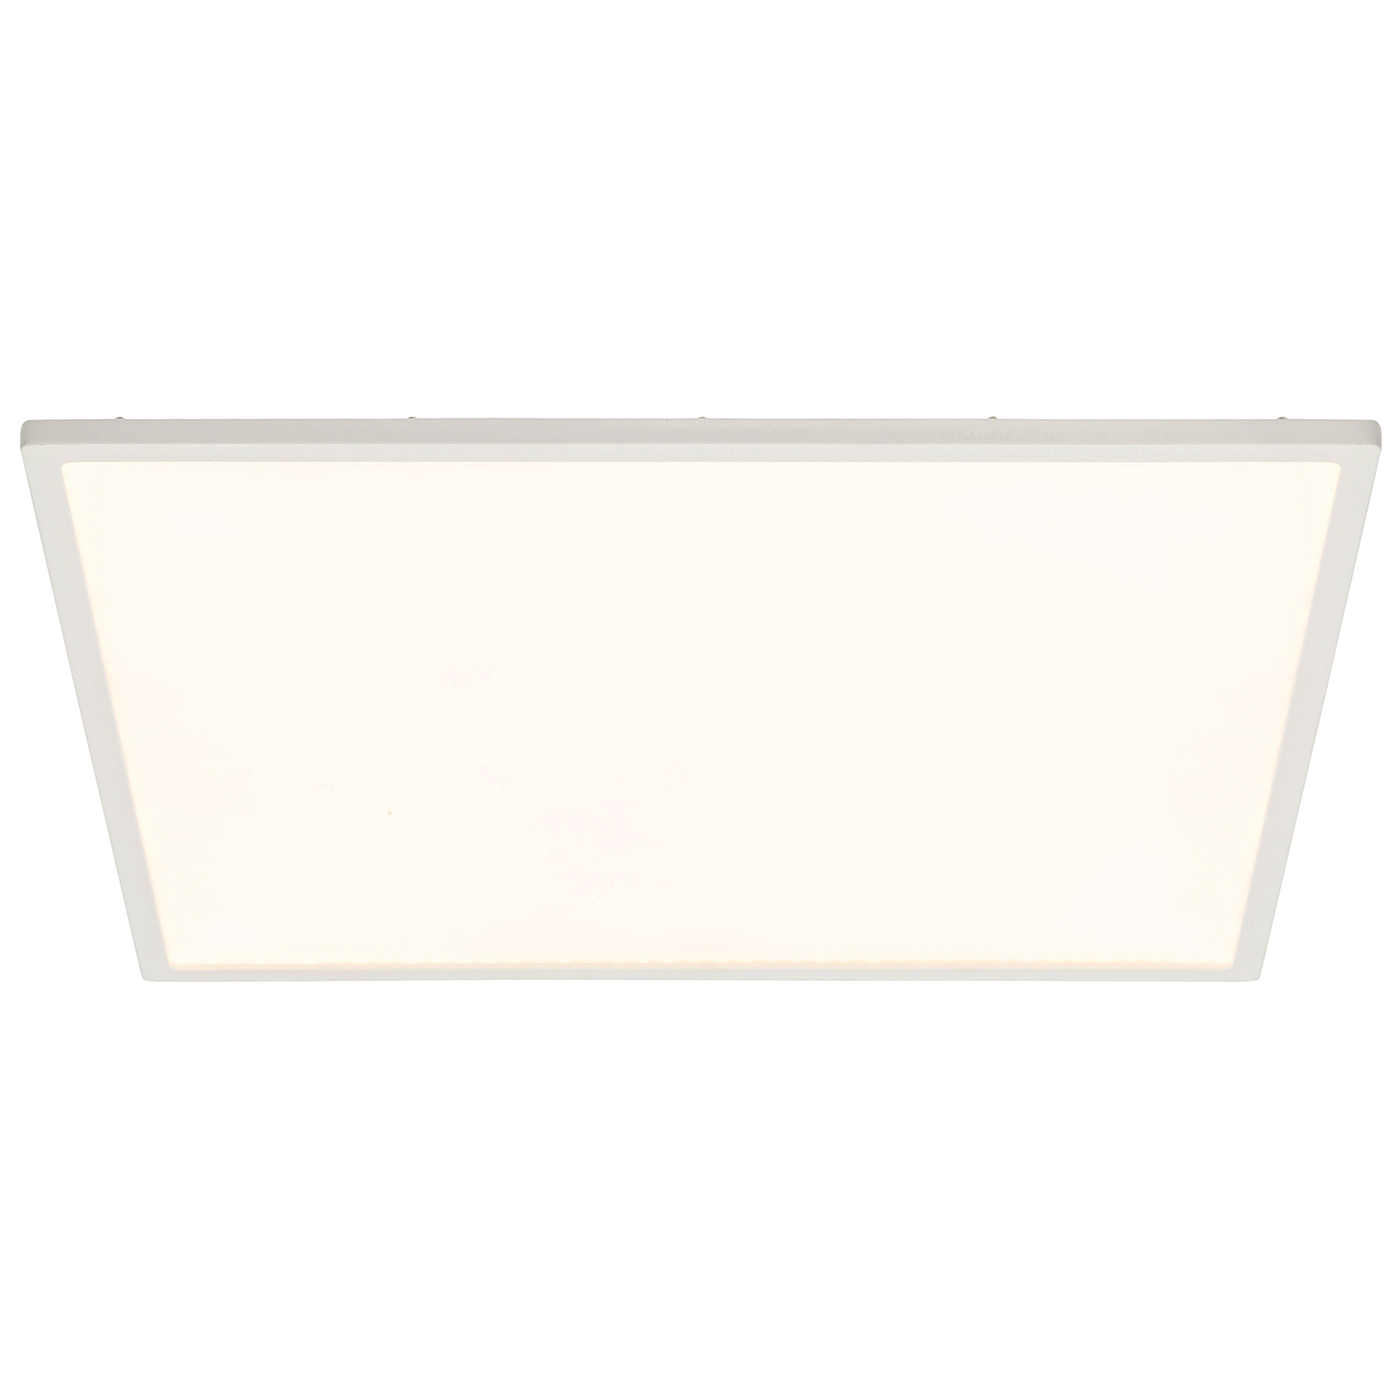 Endon Ceres 450mm square flush ceiling light 30W Gloss white & opal ps plastic